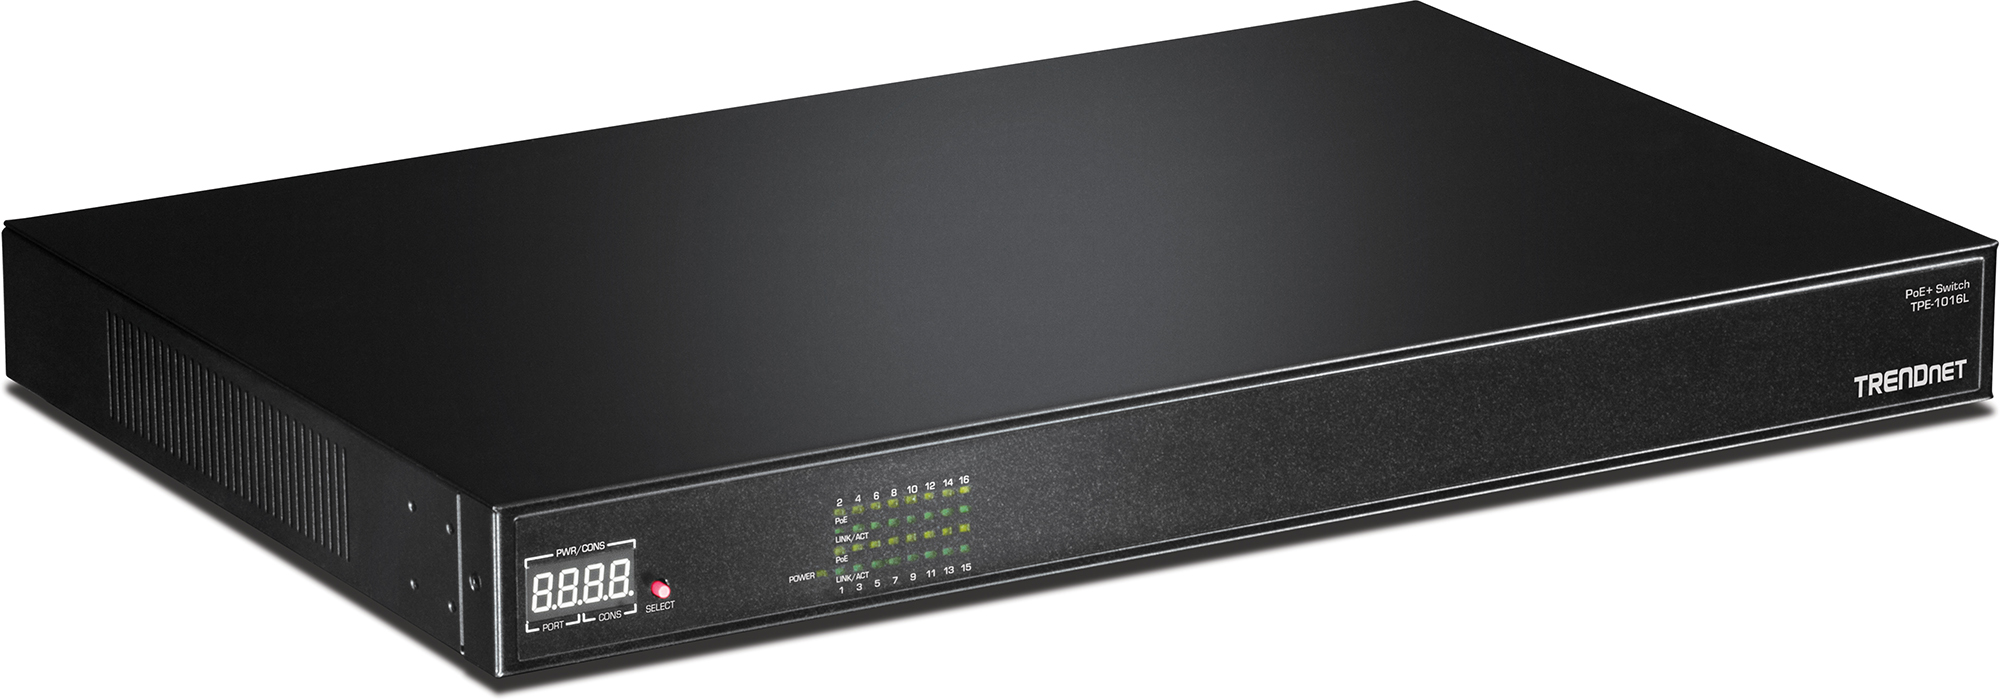 16 Port 10 100 Mbps 250W AV PoE Switch